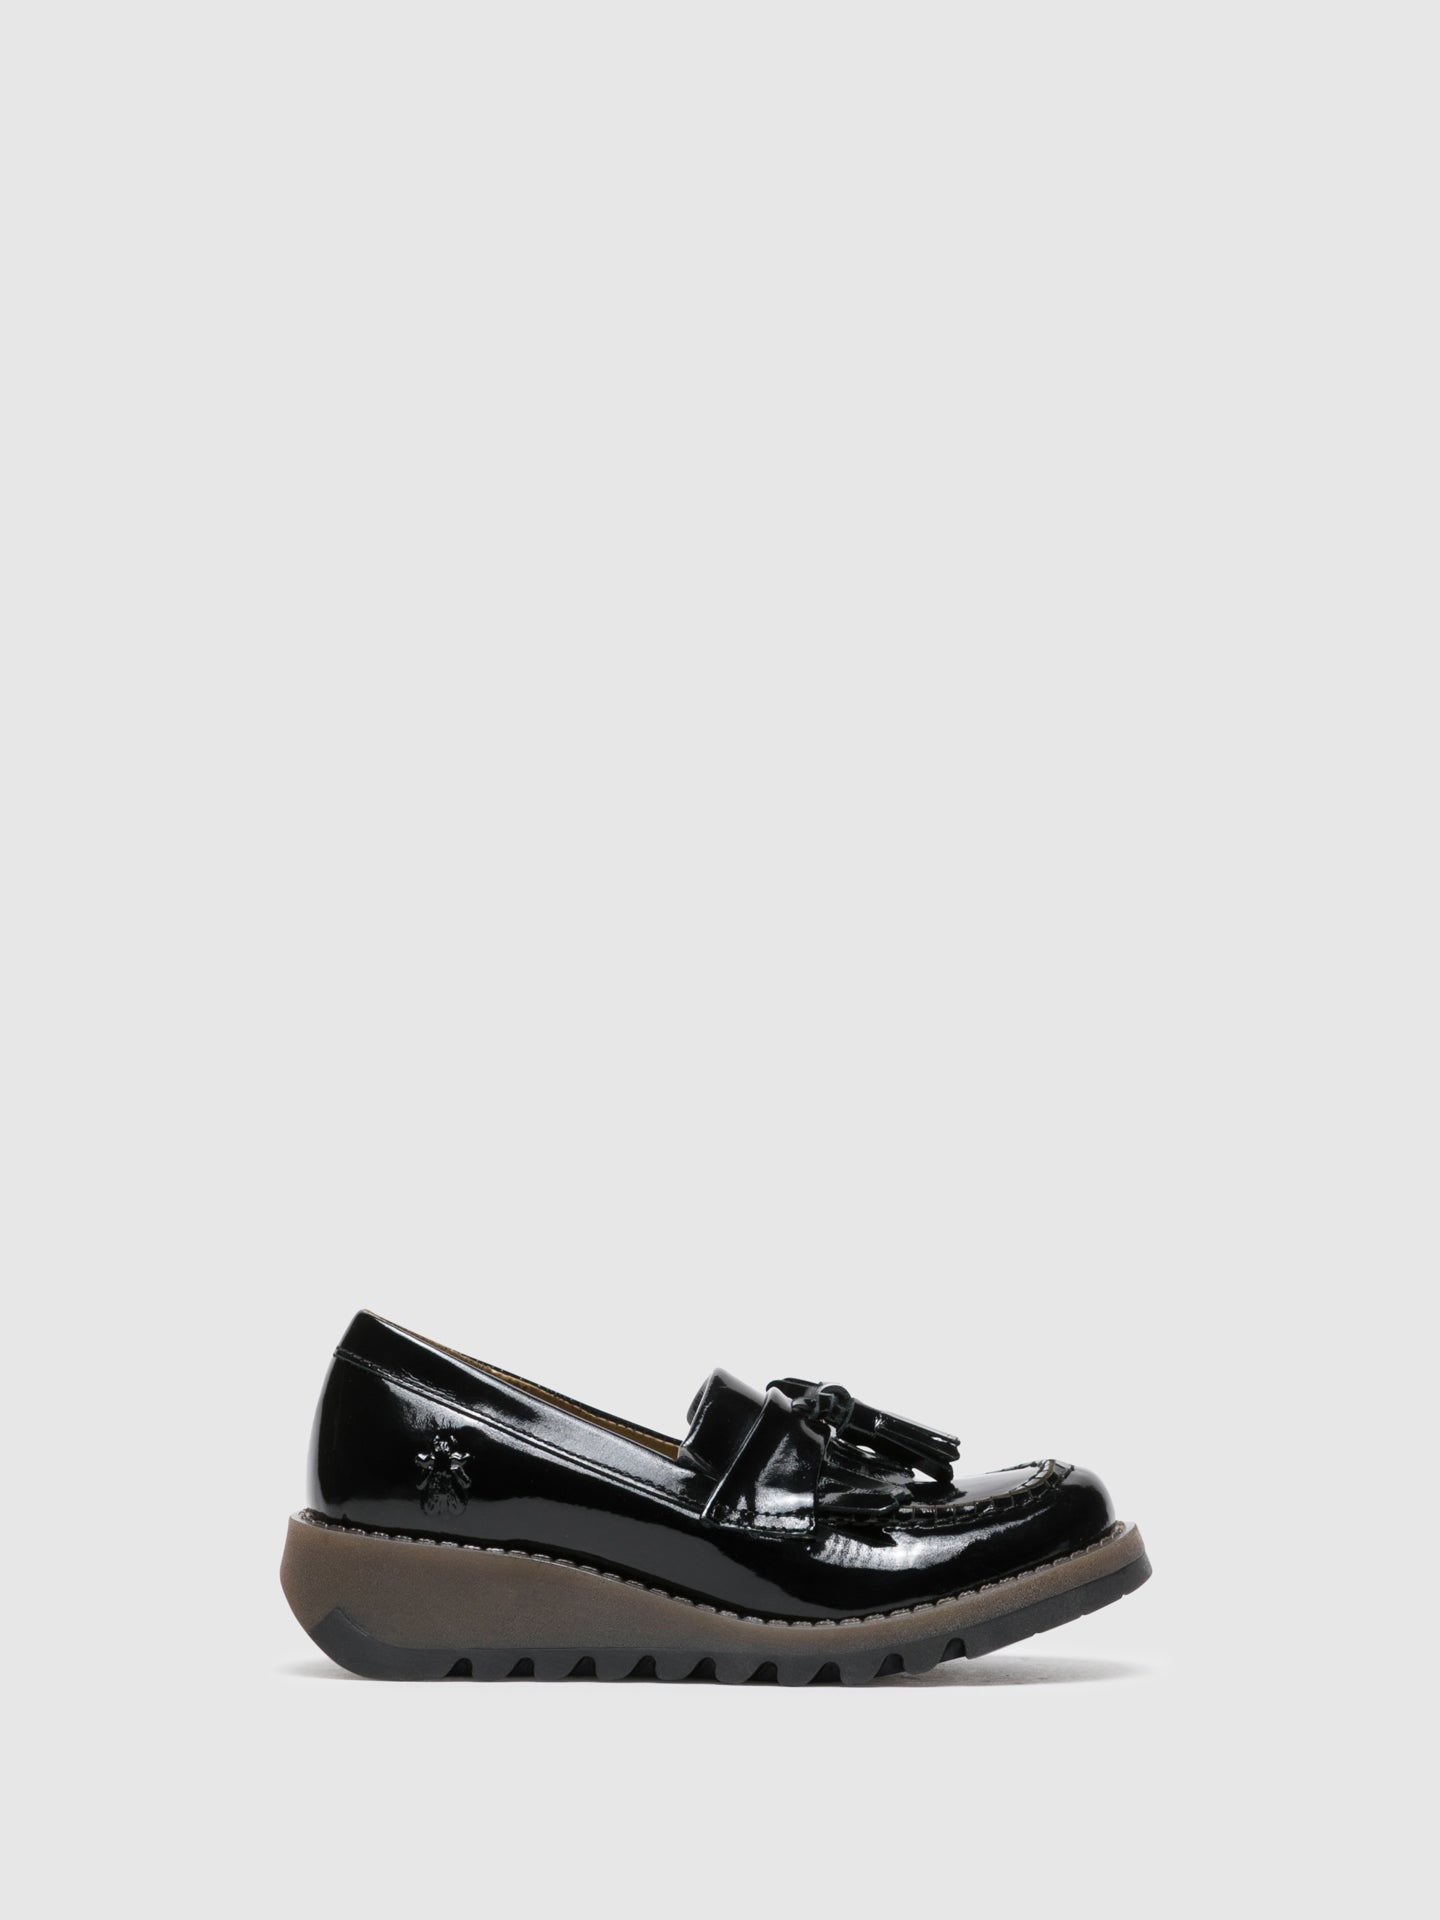 Fly London Zapatos Loafers en color Negro Brillante